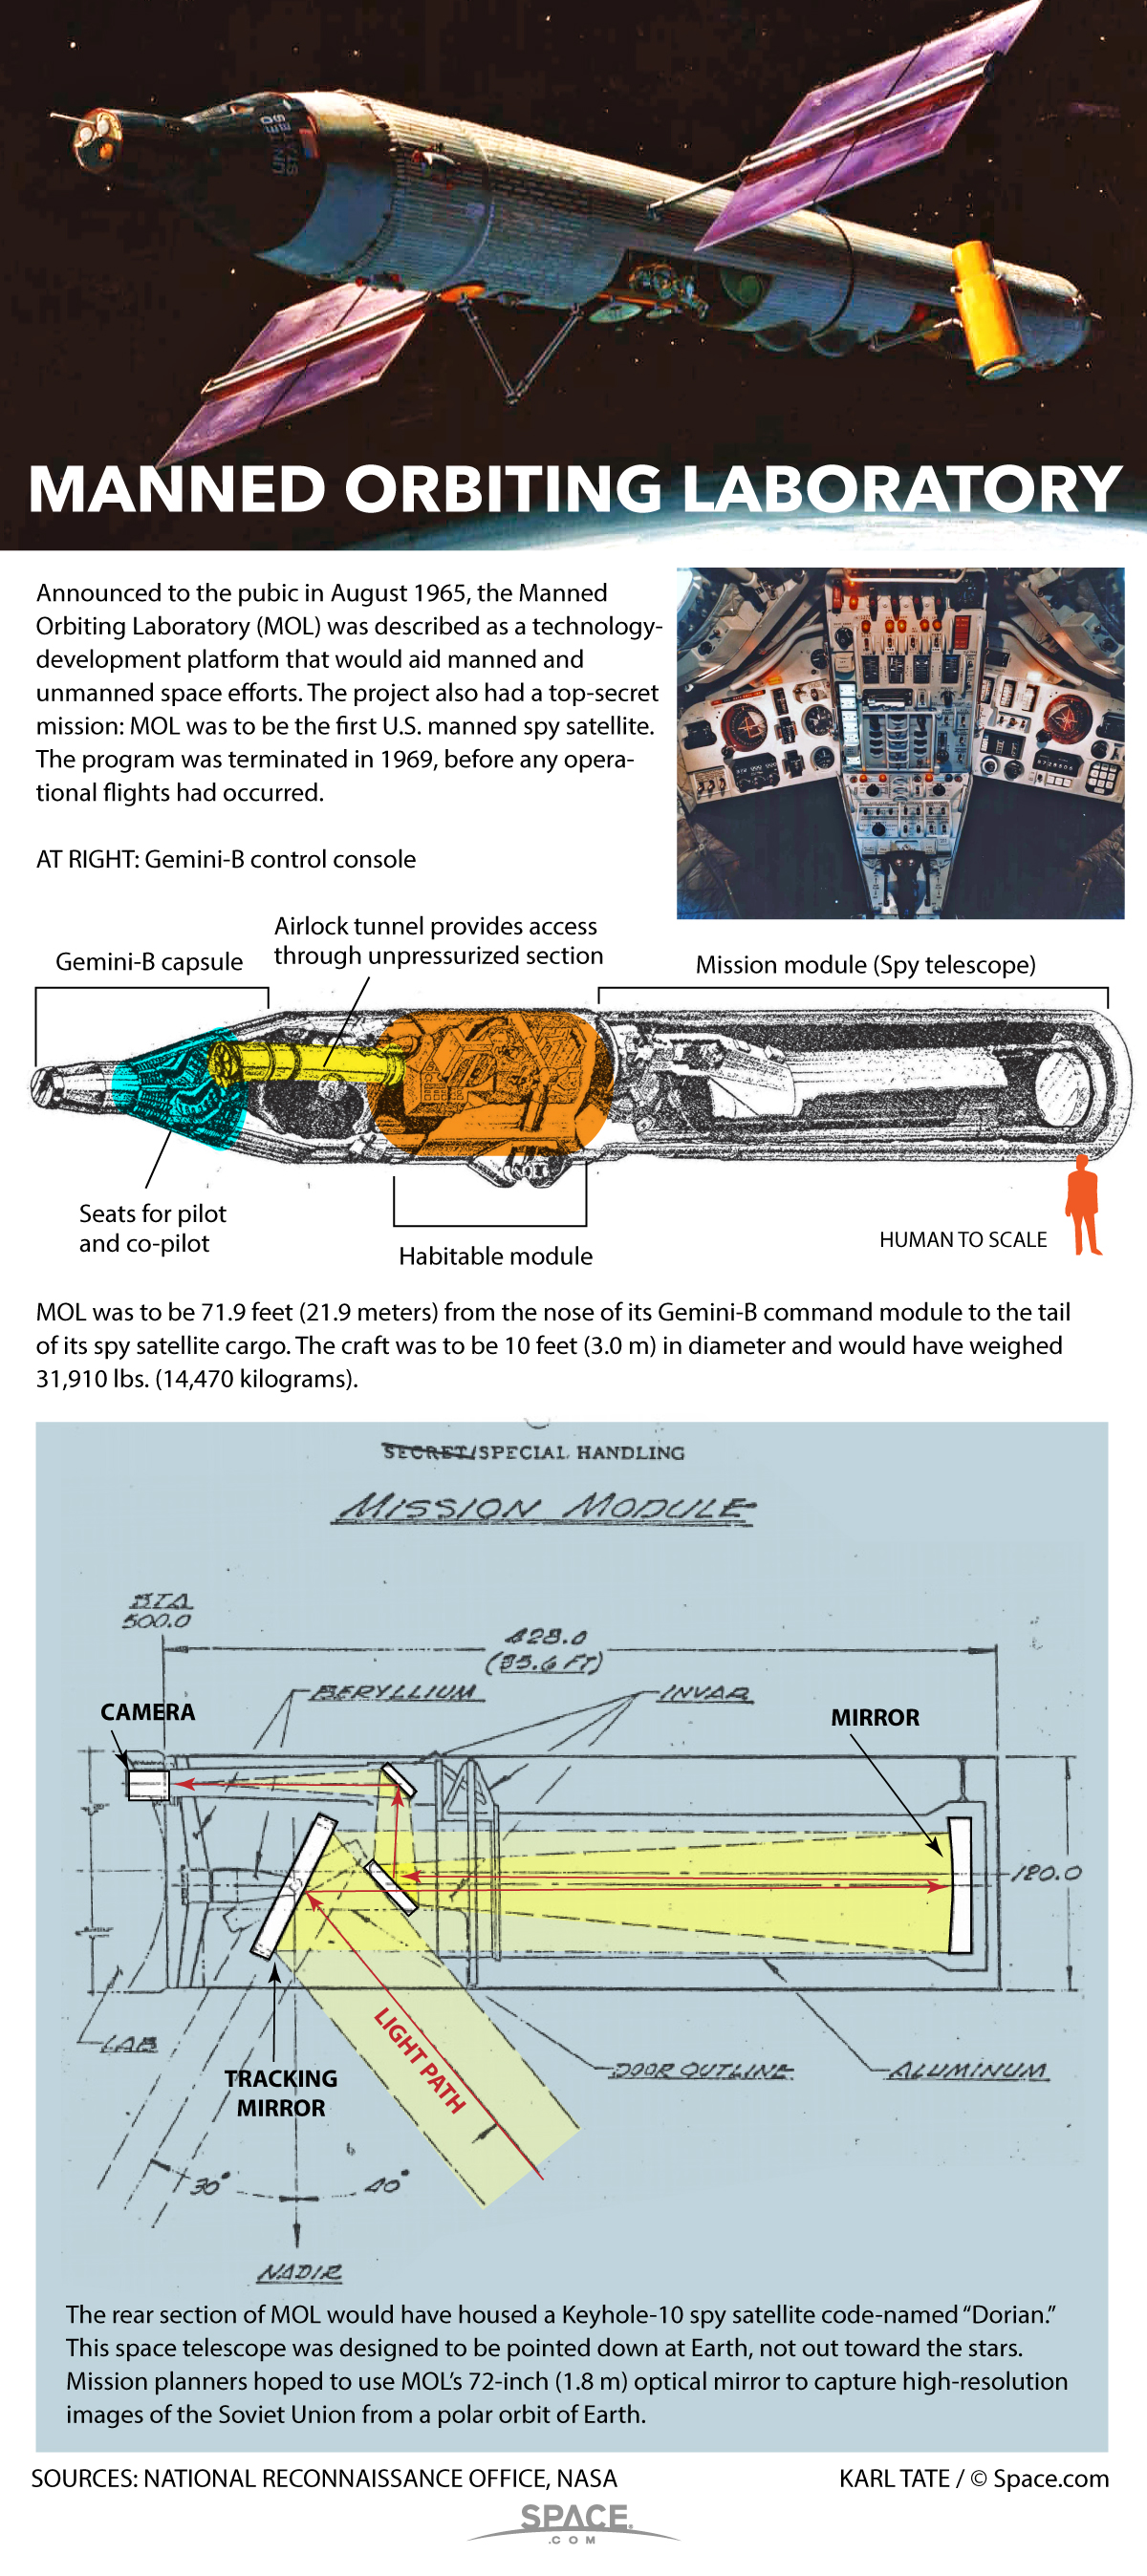 Manned Orbiting Laboratory: Secrets of a US Military Space Station (Infographic)